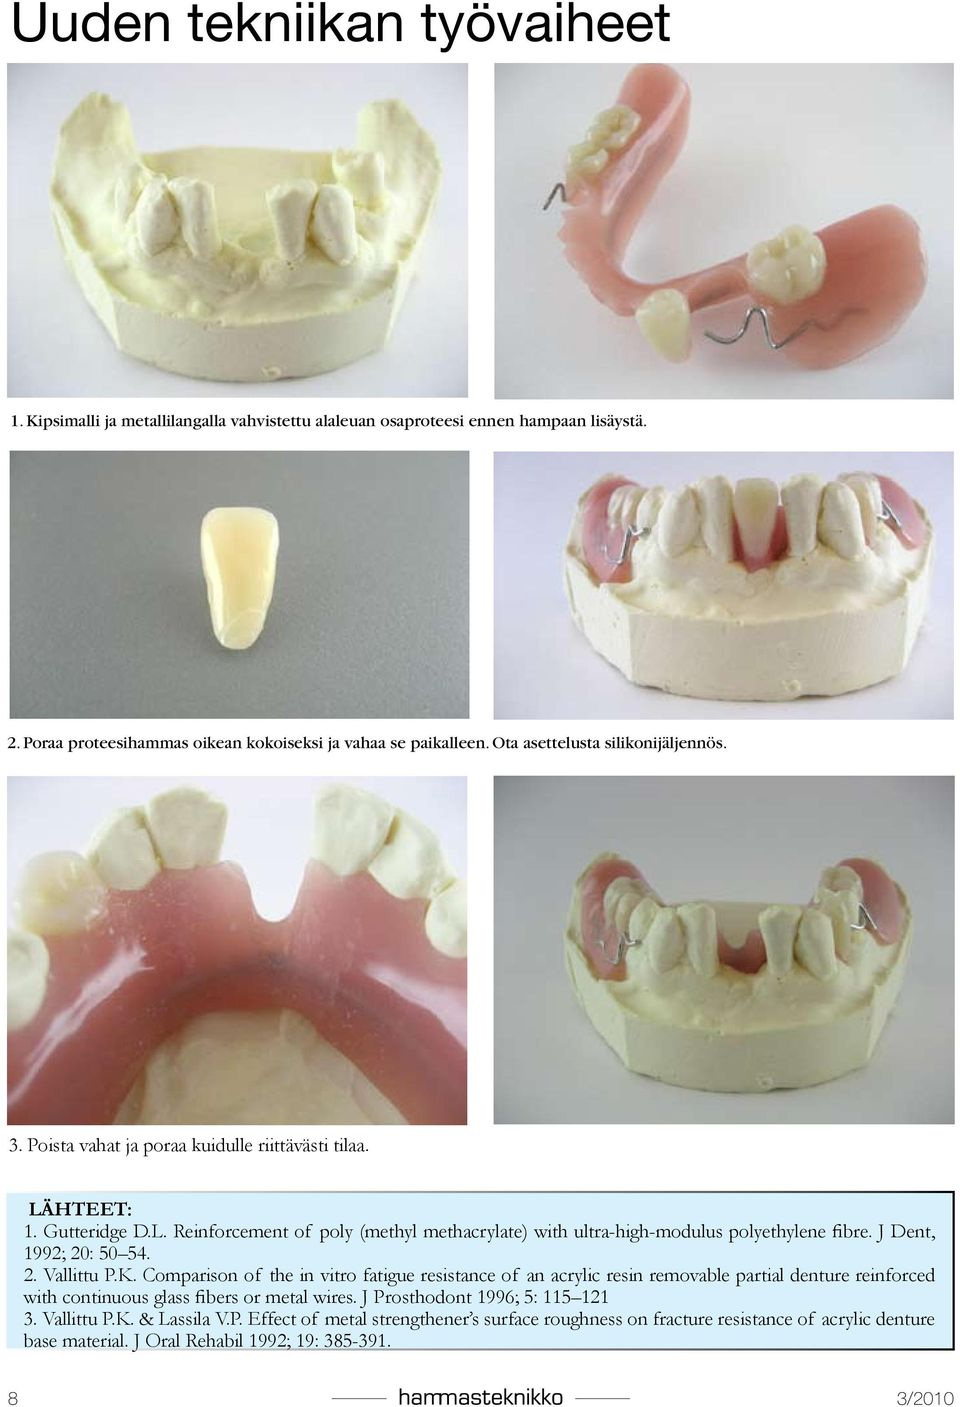 J Dent, 1992; 20: 50 54. 2. Vallittu P.K. Comparison of the in vitro fatigue resistance of an acrylic resin removable partial denture reinforced with continuous glass fibers or metal wires.